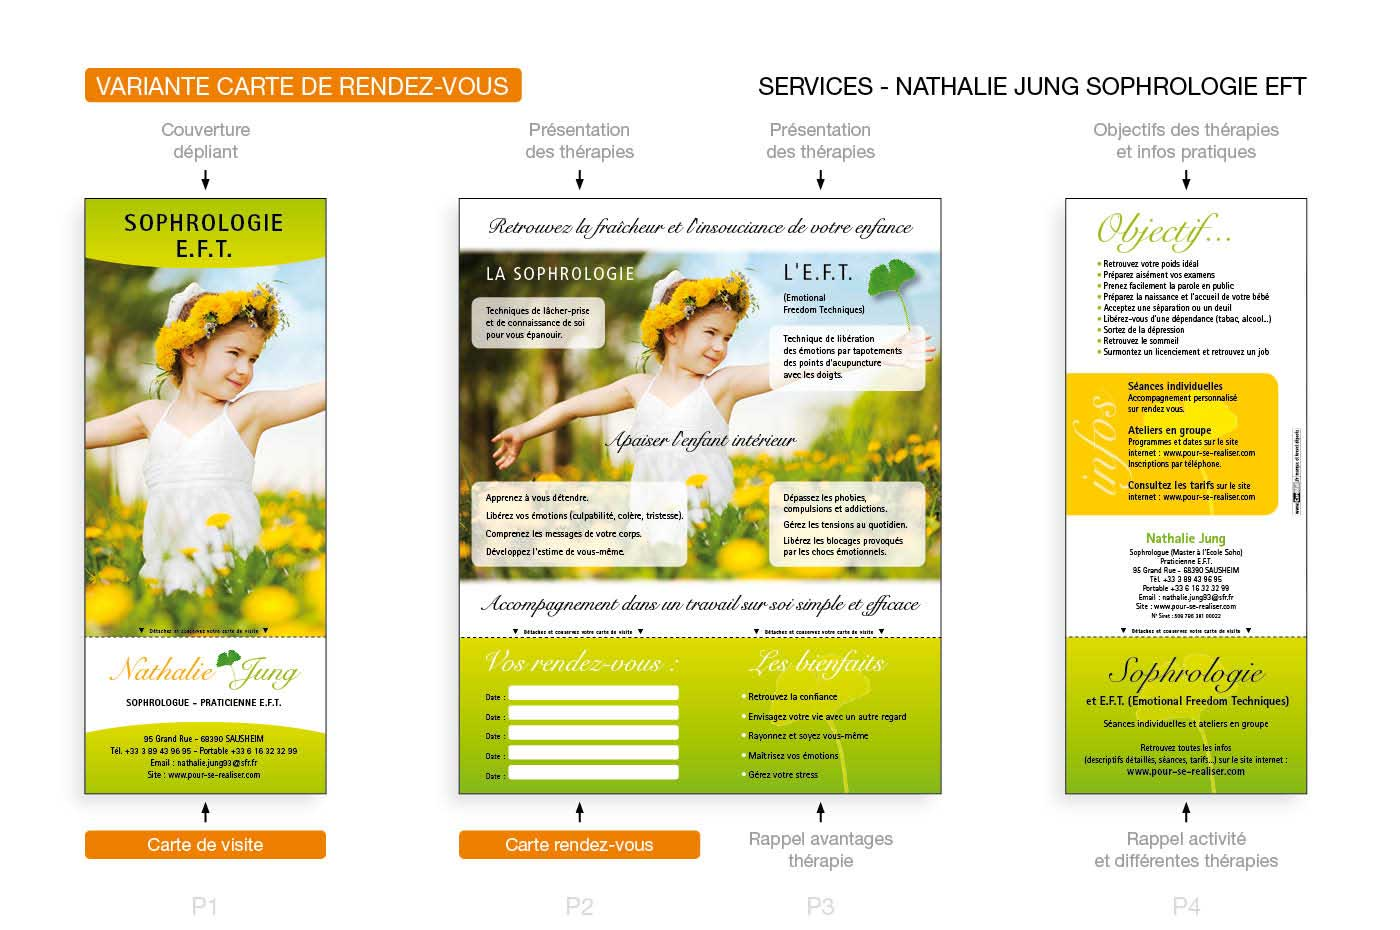 Depliant CardMail Loutil De Communication Ideal Pour Une Presentation Dactivite Condensee Et Efficace